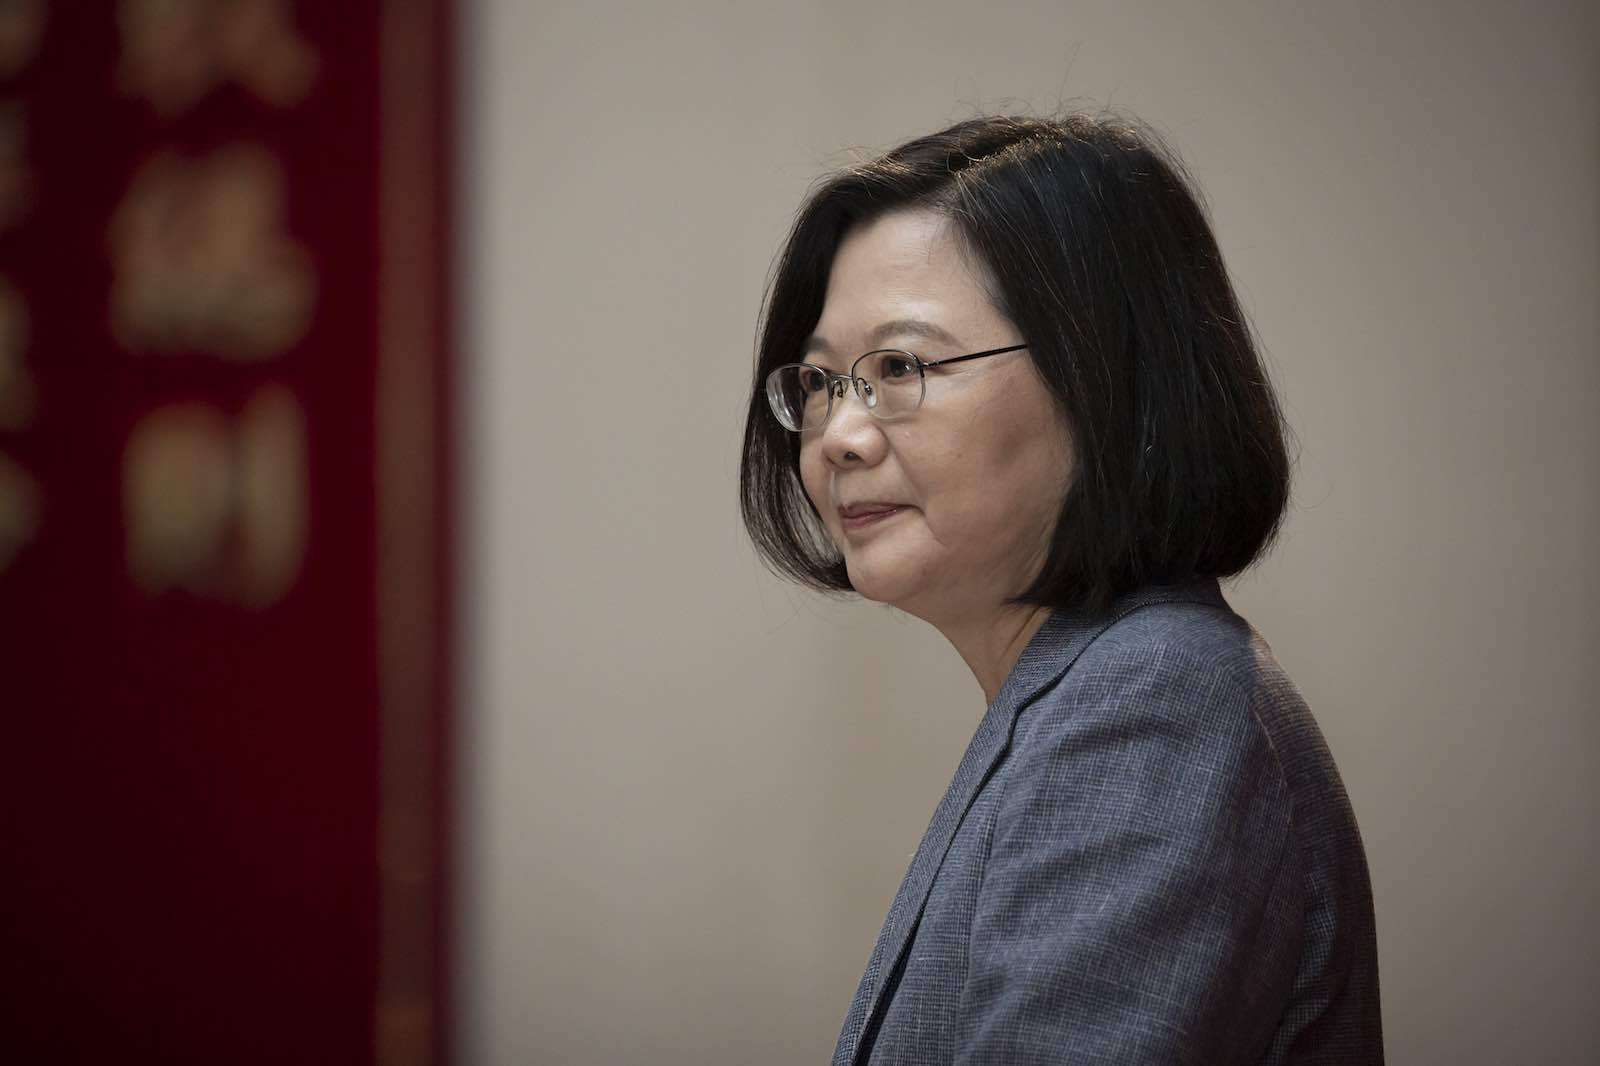 Tsai Ing-wen has taken a prudent and cautious stance on cross-strait issues (Taiwan Presidential Office/Flickr)